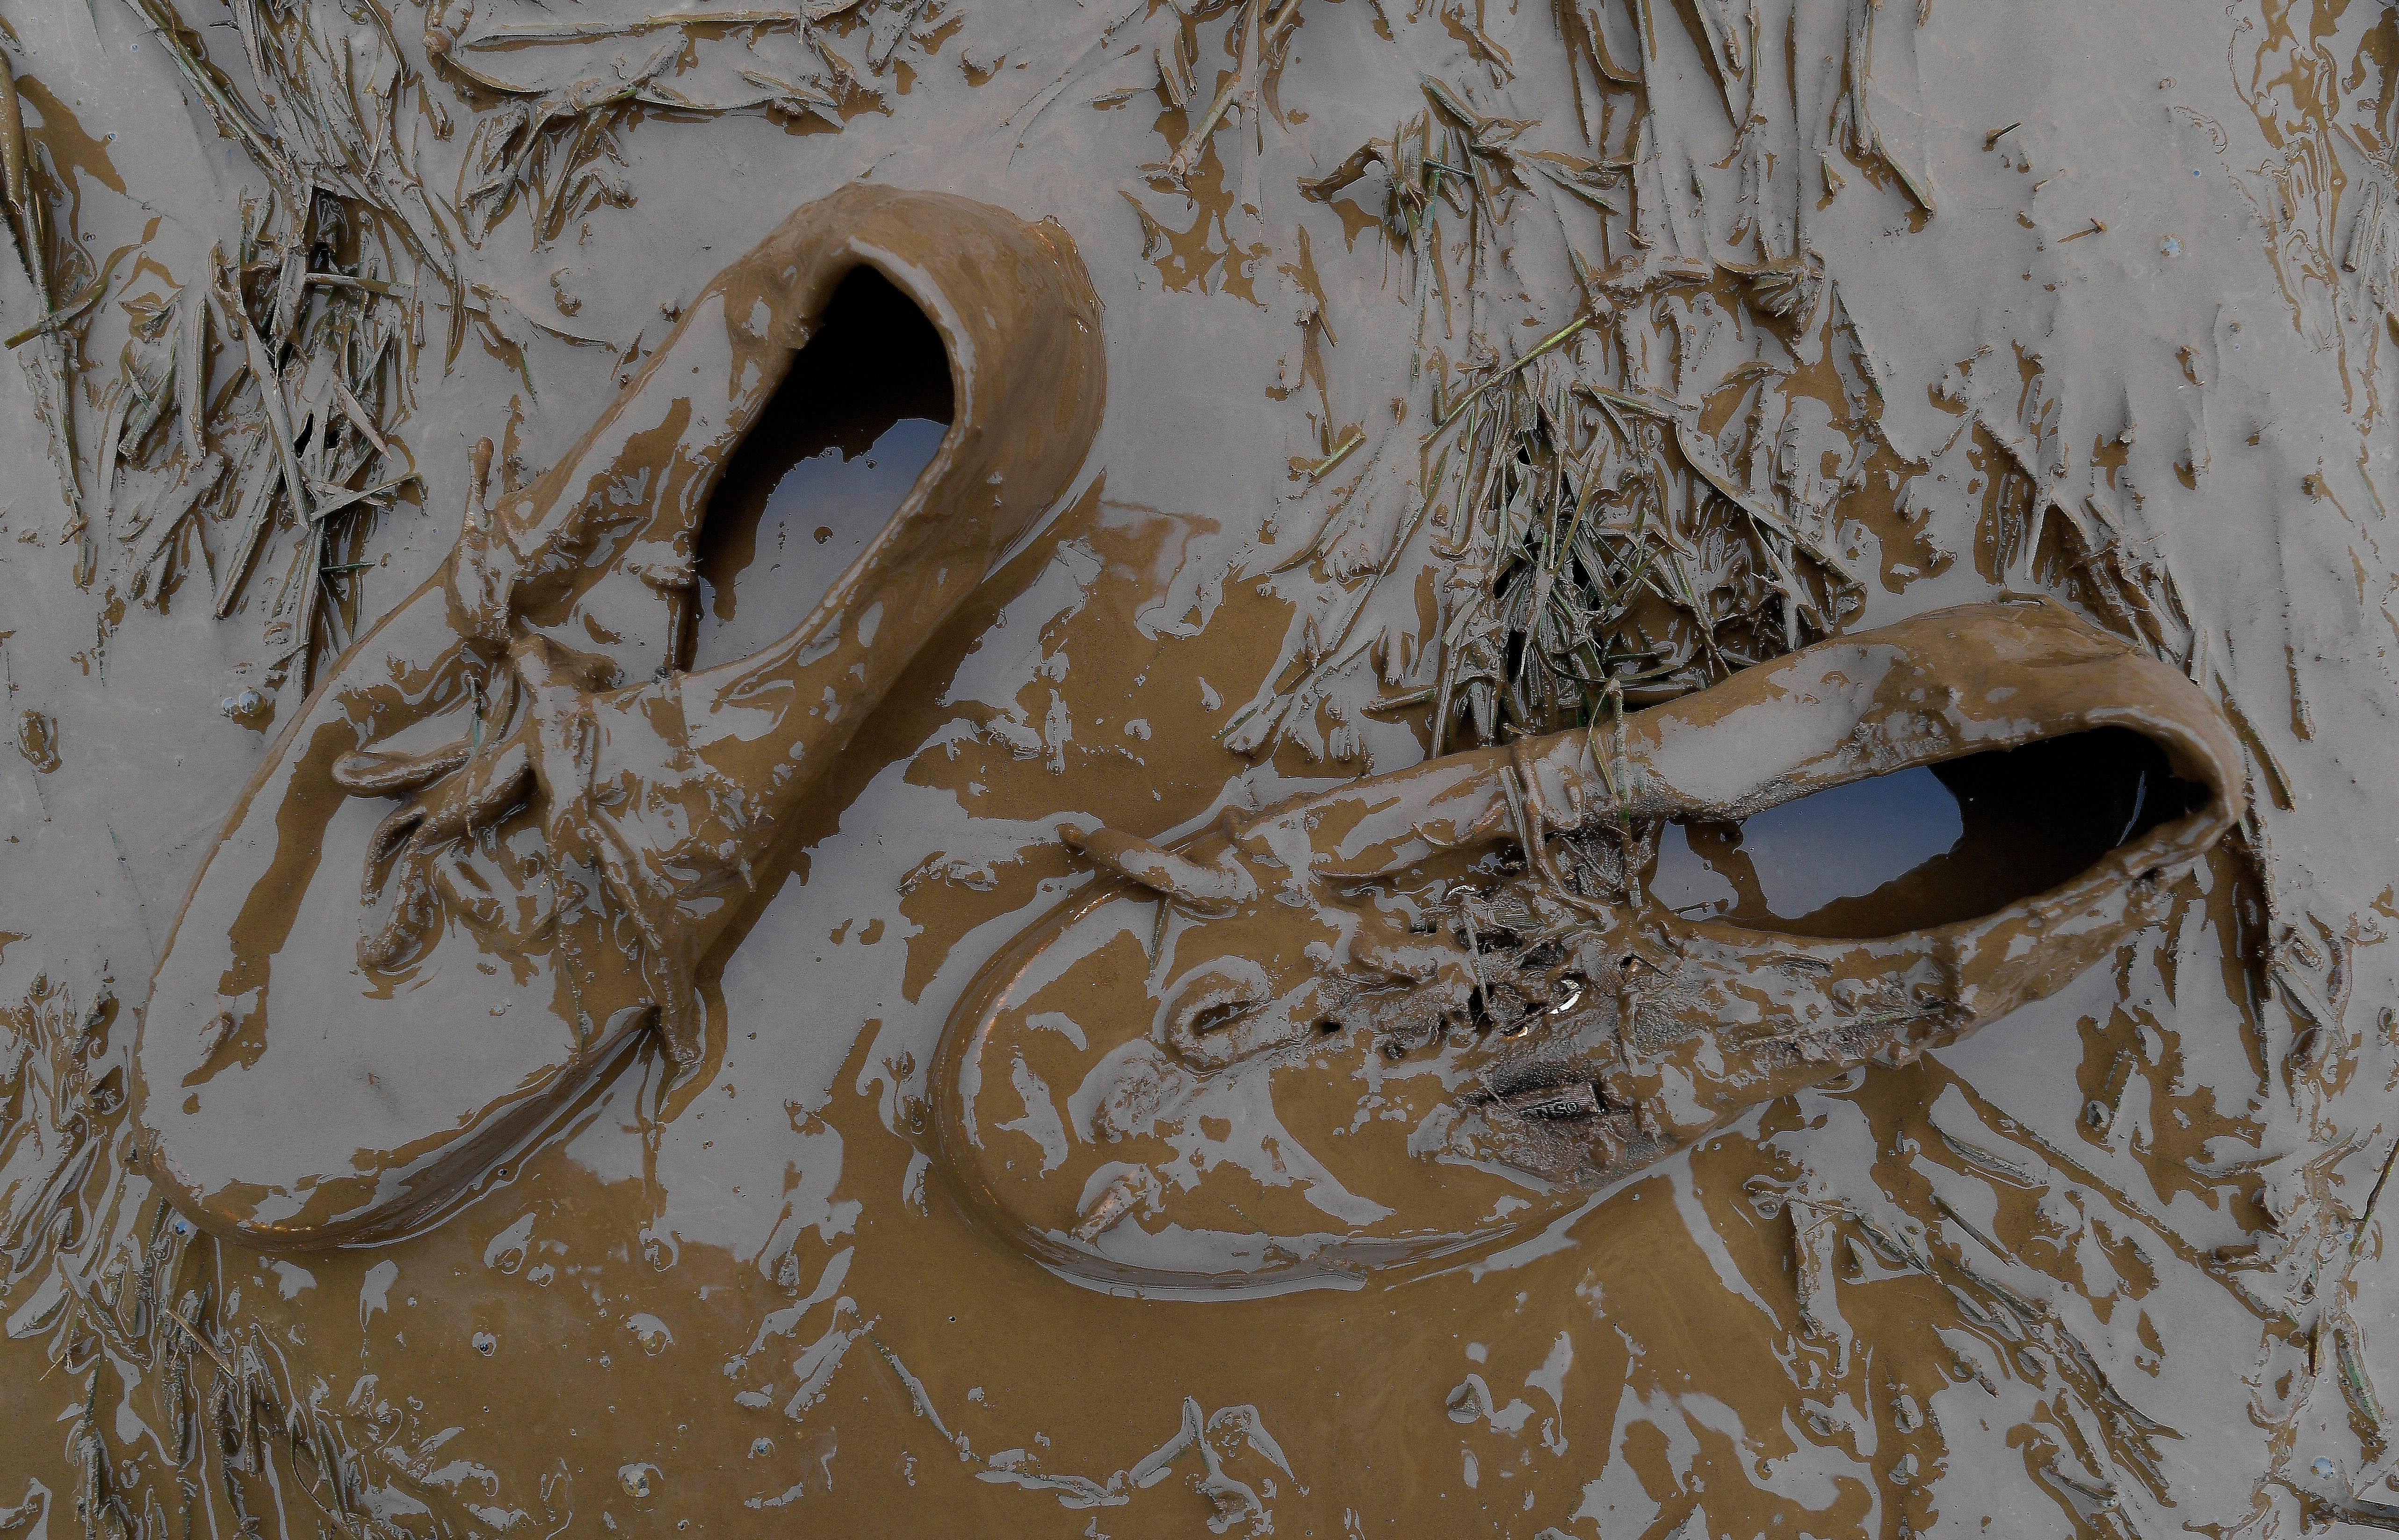 A pair of shoes are left in deep mud in the infield ahead of the 143rd Preakness Stakes horse race at Pimlico race track, Saturday, May 19, 2018, in Baltimore. (AP Photo/Mike Stewart)